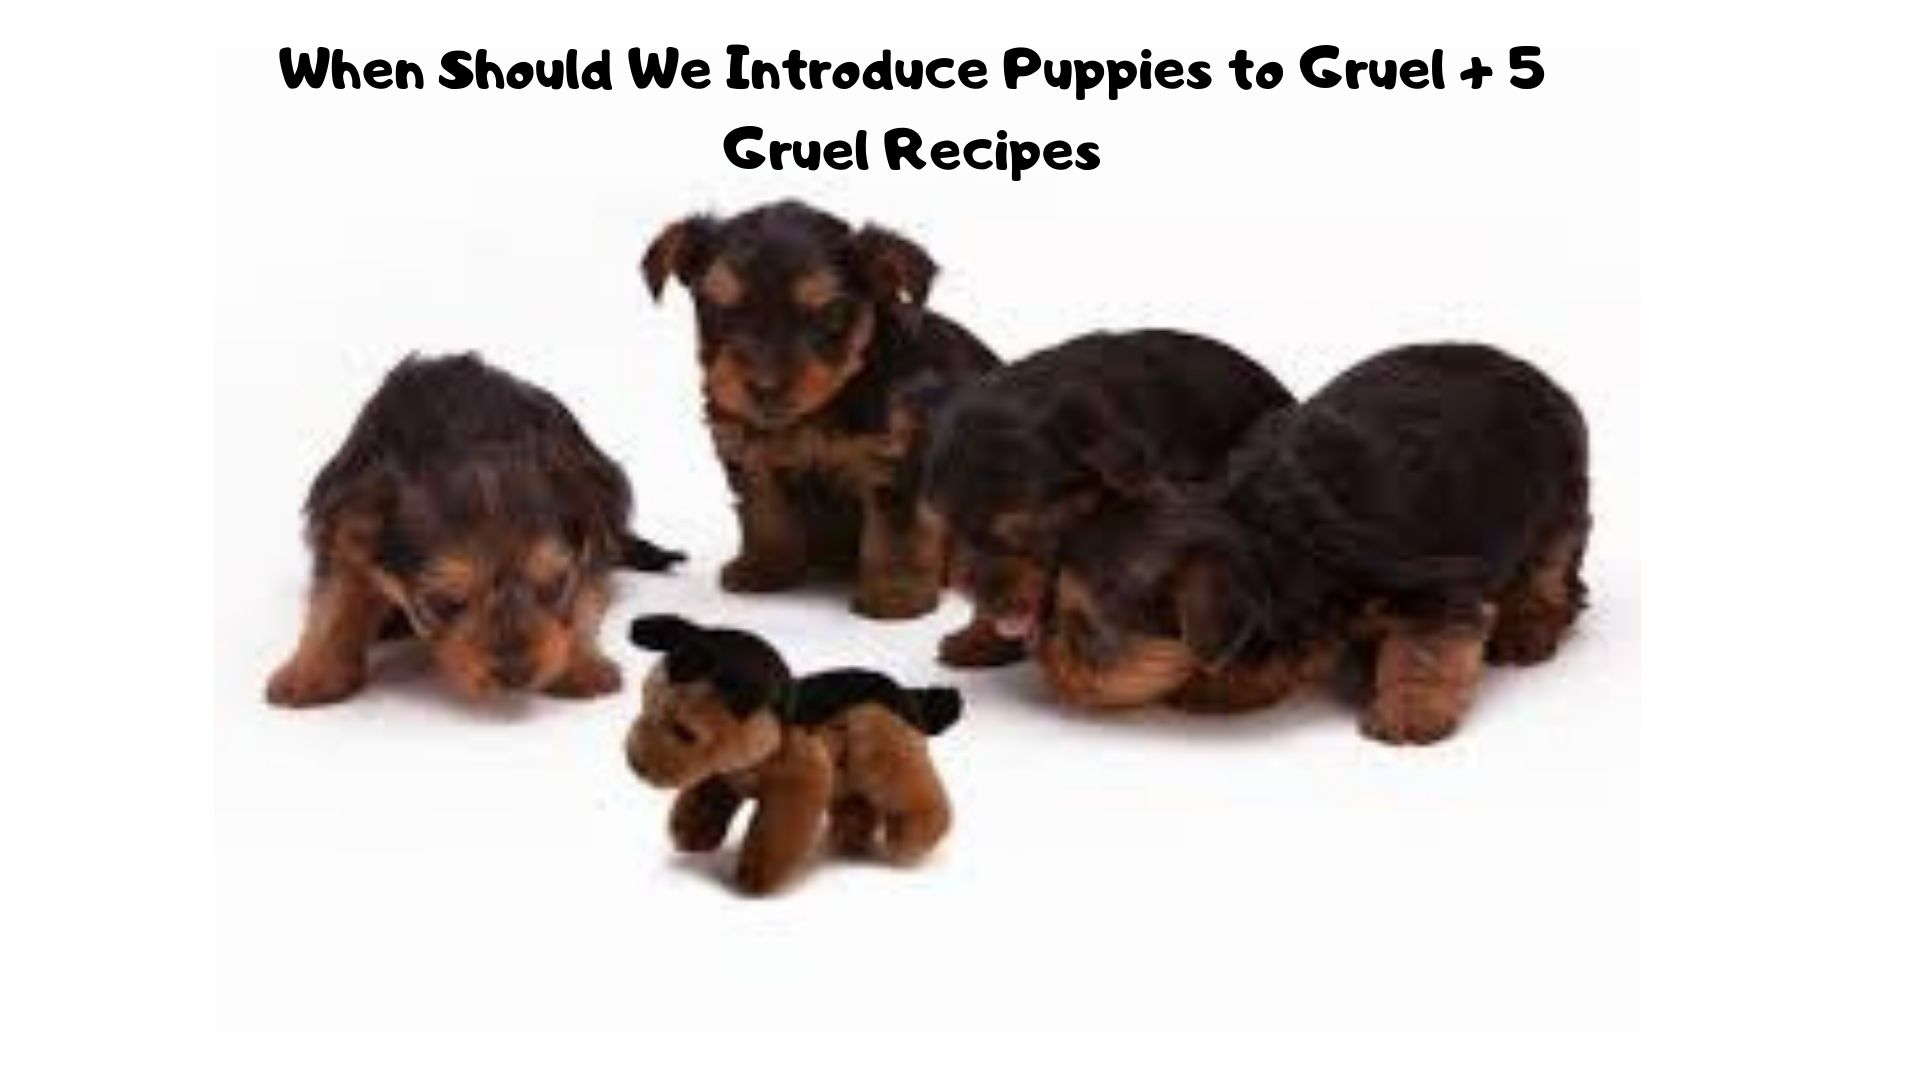 When Should We Introduce Puppies to Gruel ?